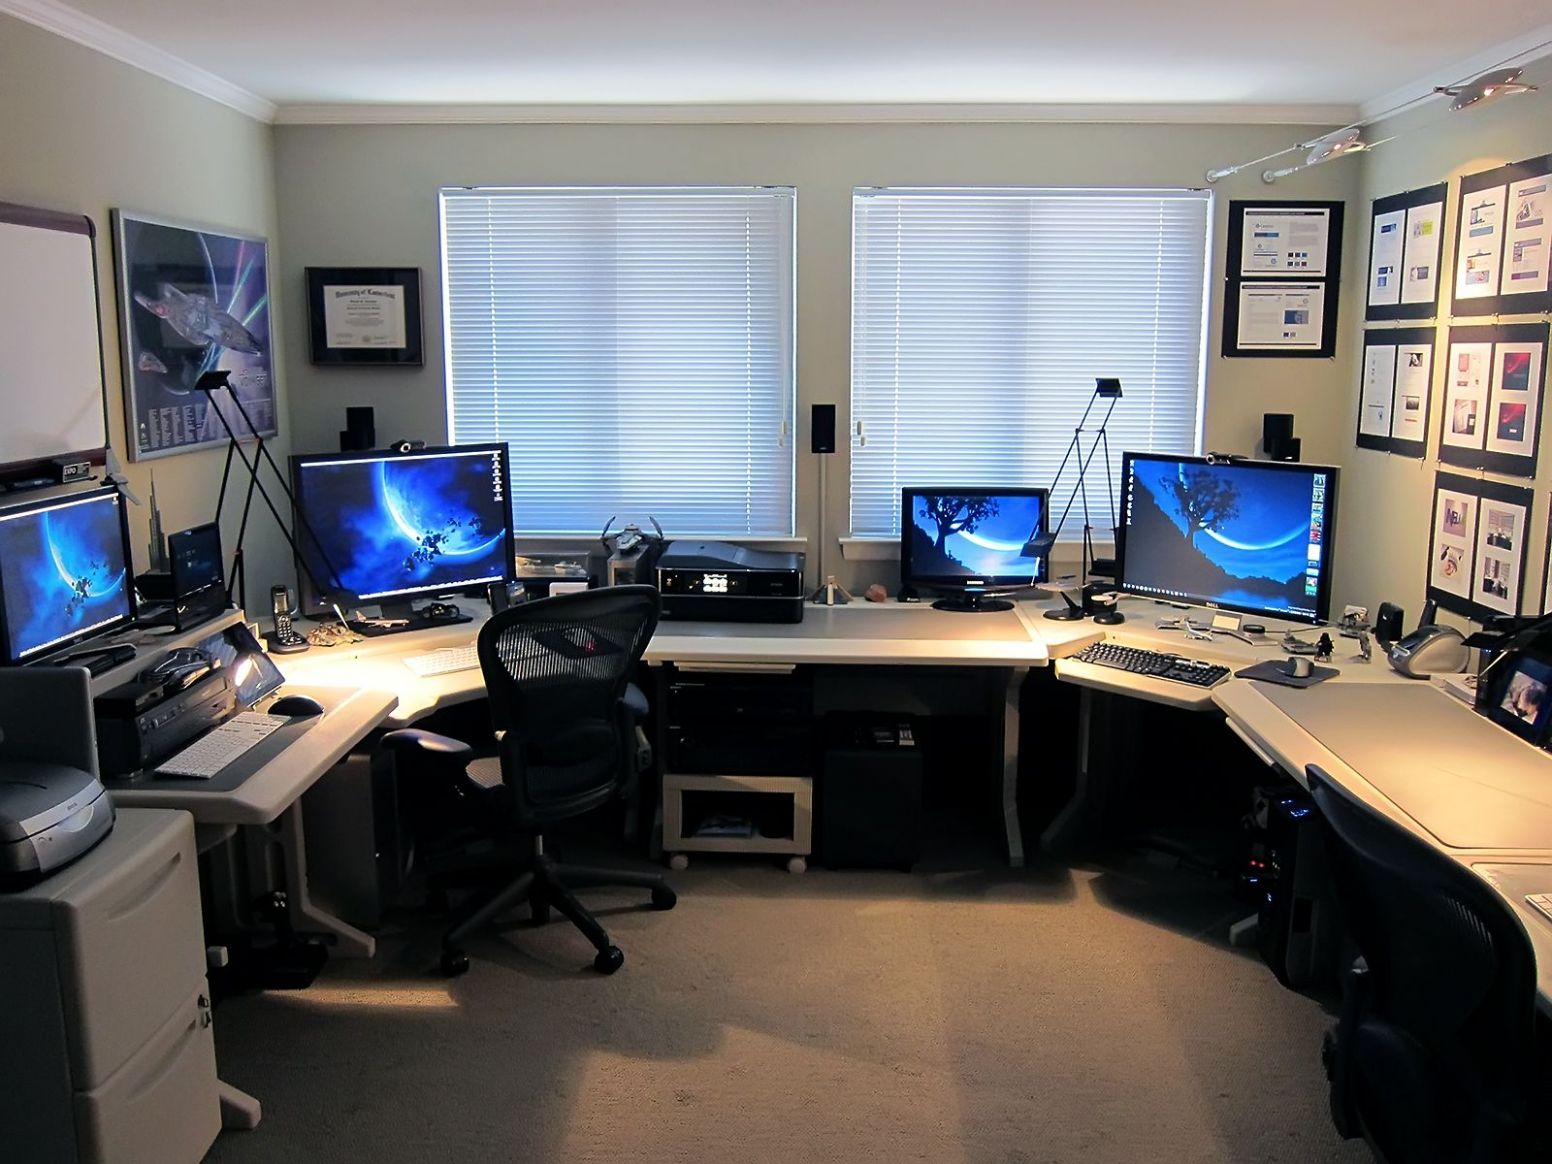 using multiple monitors | Home office setup, Office setup, Home ..